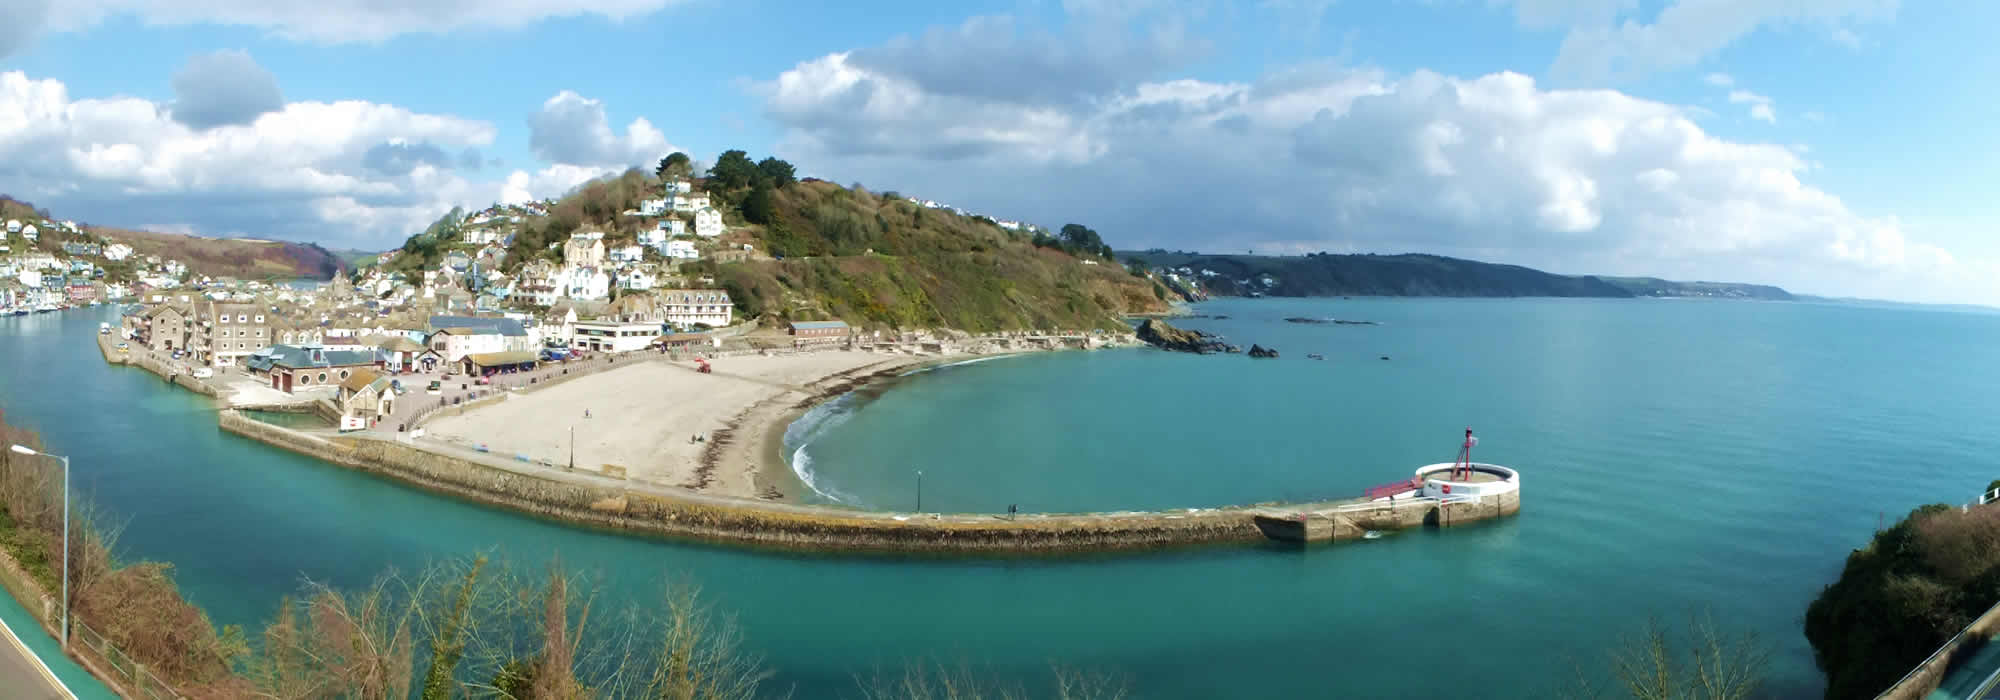 Sea views from the Watermark in Looe, Cornwall